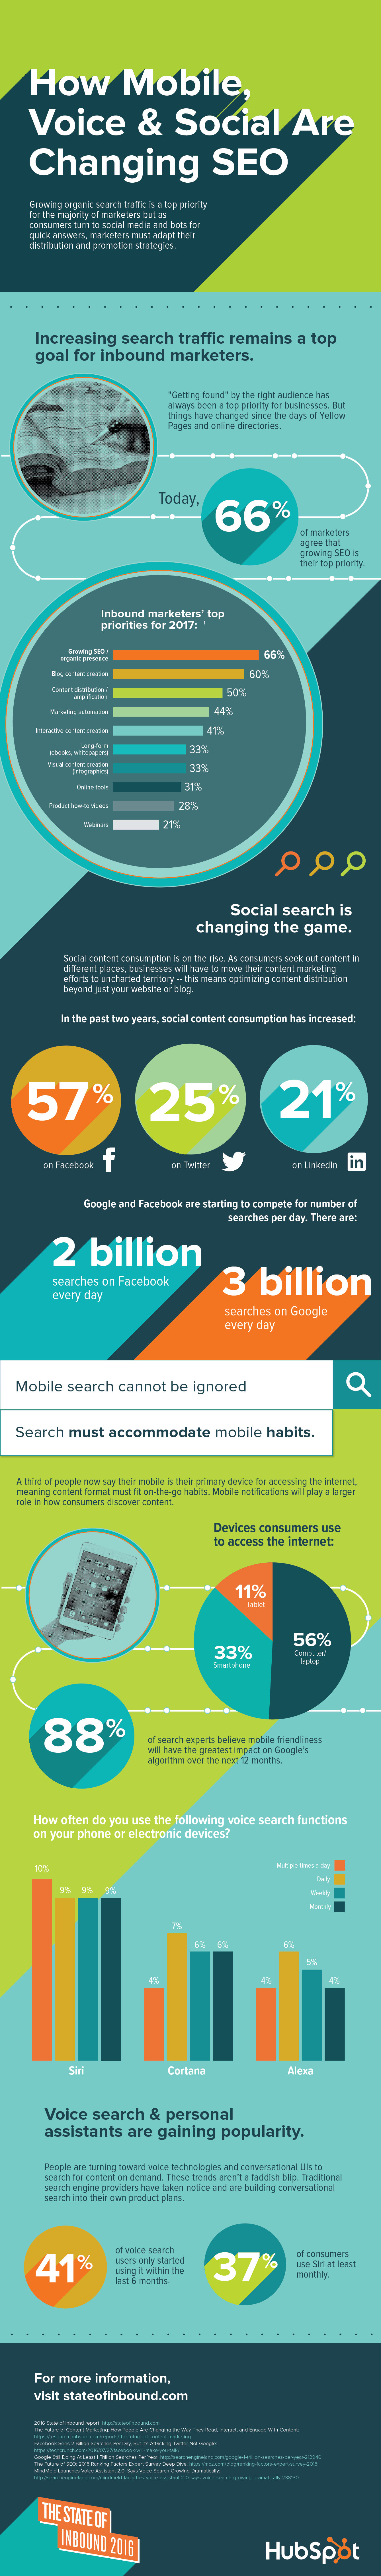 infographic on mobile, voice and social seo